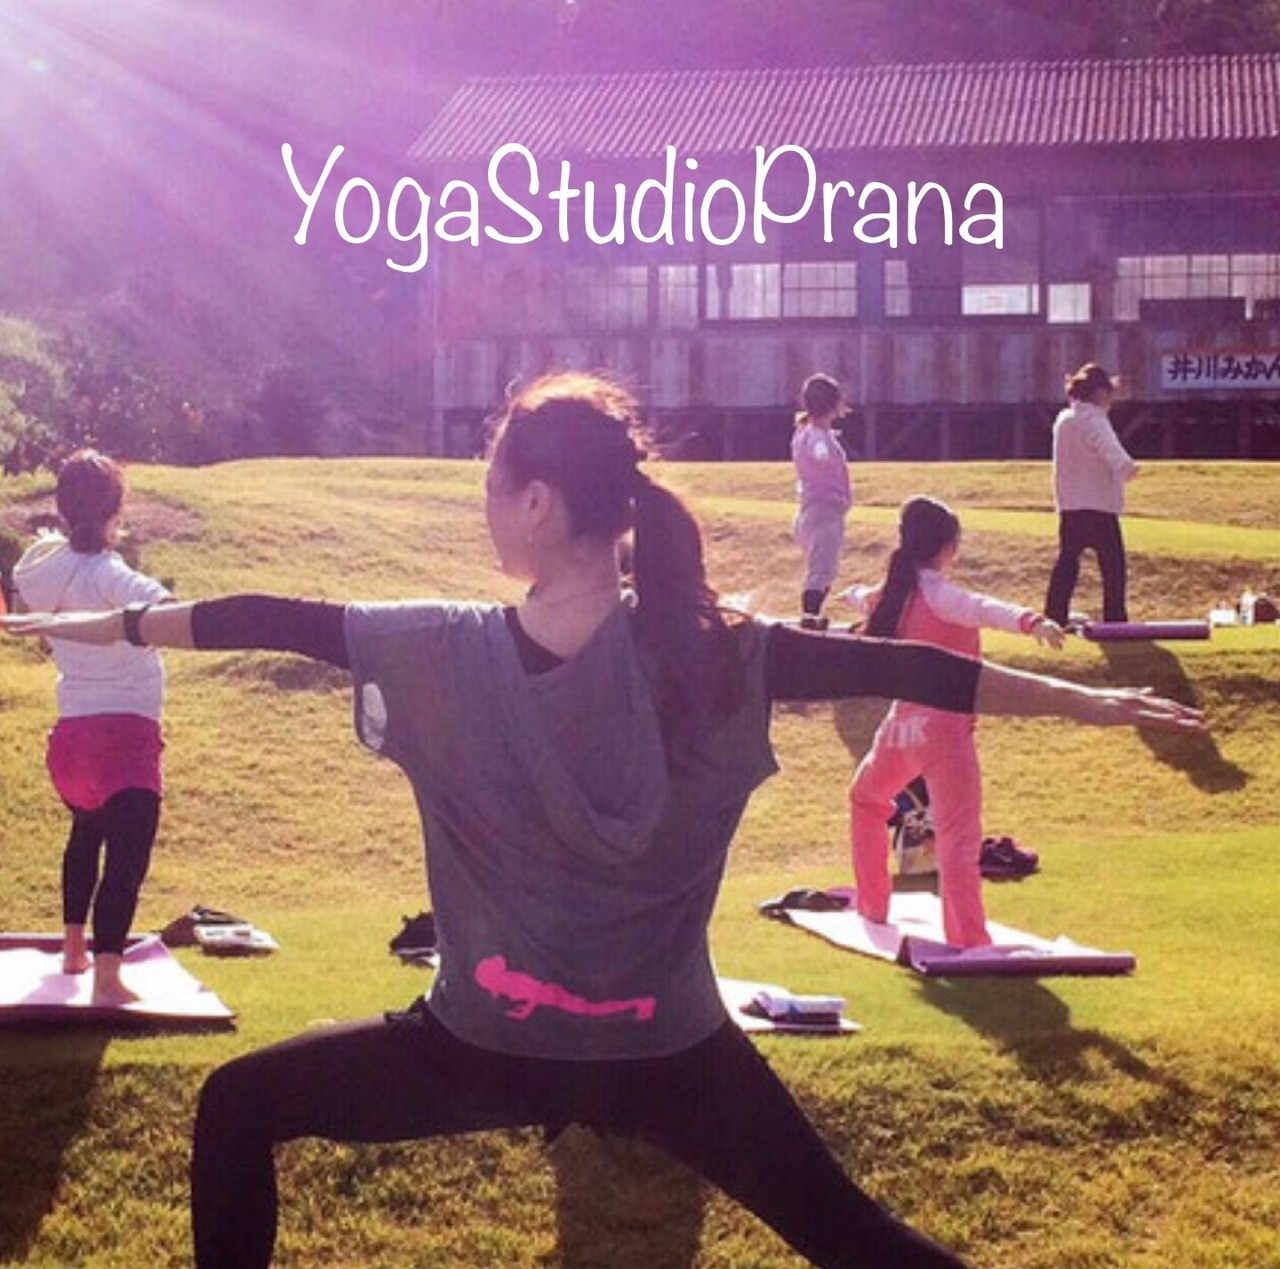 yoga studio Prana の画像